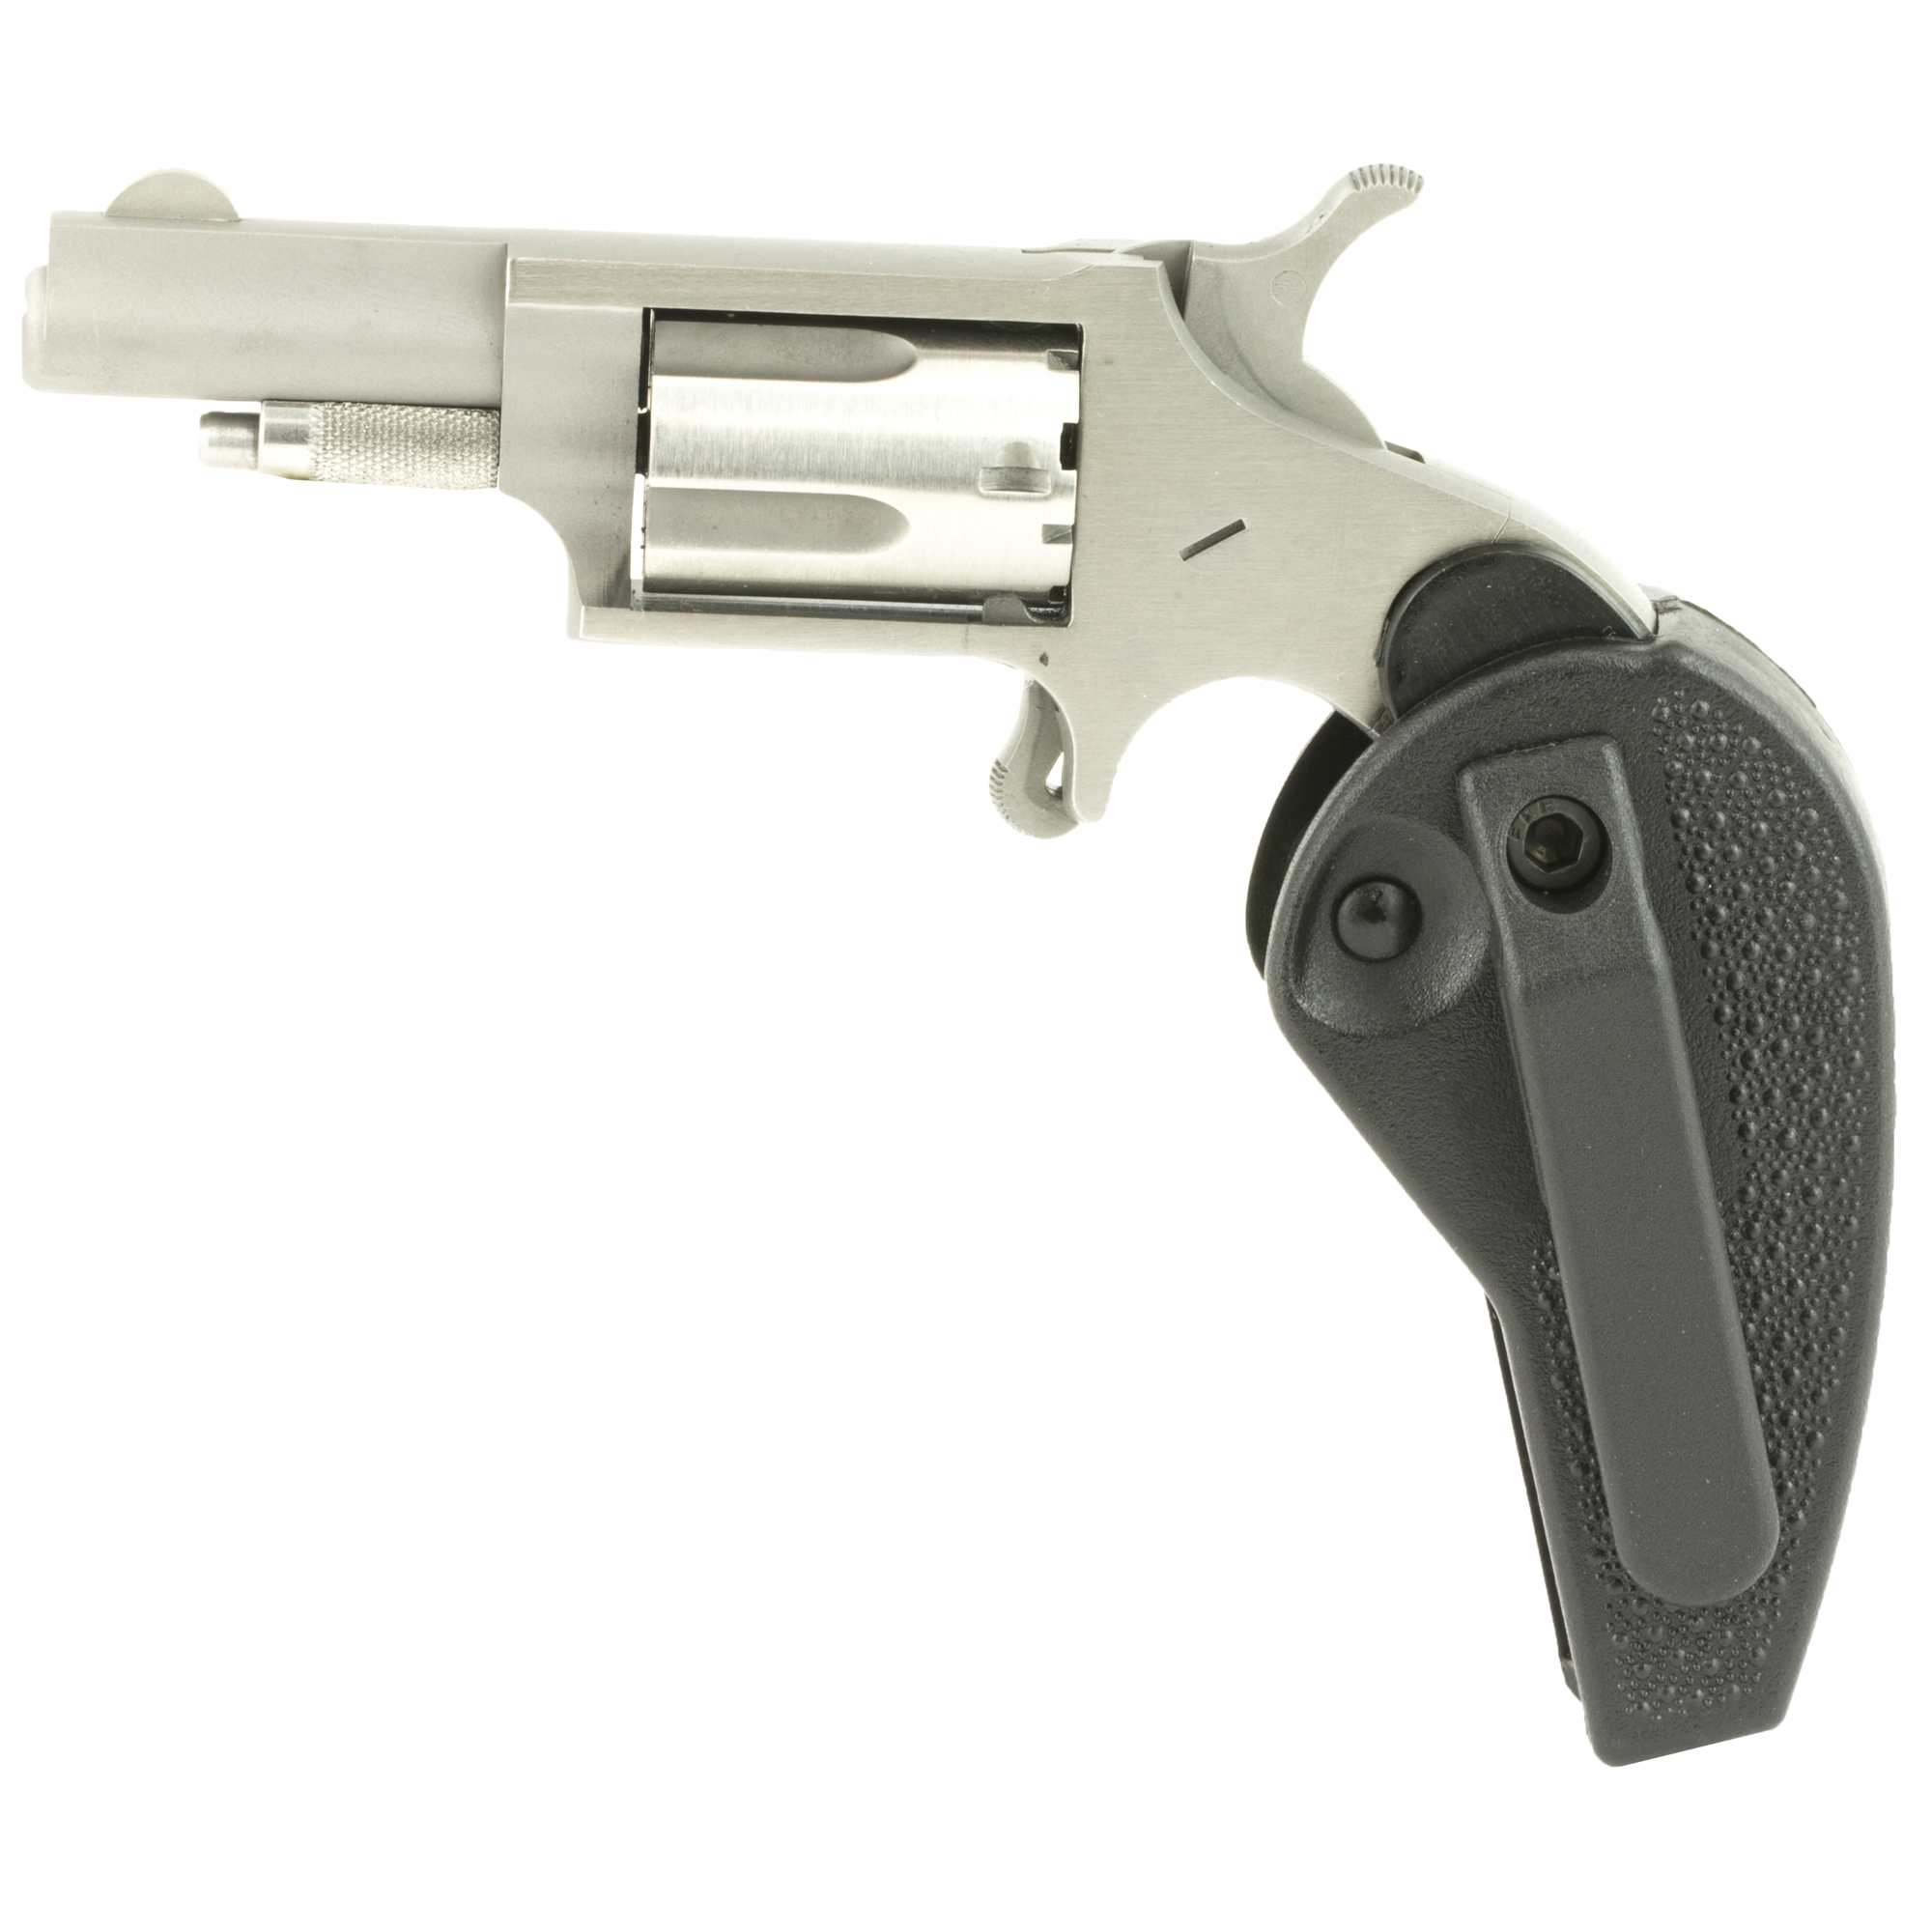 "The NAA .22 Long Rifle is the most popular Mini-Revolver ever produced. With the many current accessories"" it is versatile for many applications and is the standard by which other Mini-Revolvers are judged. They offer their .22 Long Rifle Mini-Revolver in both a 1 & 1/8"" Barrel and a 1 & 5/8"" Barrel configuration. The NAA .22 Long Rifle with the 1 & 5/8"" Barrel makes a great addition to the NAA Mini-Revolver line. The NAA .22 Long Rifle with the 1 & 5/8"" barrel is also offered in their Holster Grip configuration which allows for convenient carrying and operation. The grip folds up to allow for easy concealment and carry and folds out into a locked grip for more convenient use and control. It is versatile for many applications and is the standard by which other Mini-Revolvers are judged. 5-Shot capacity."